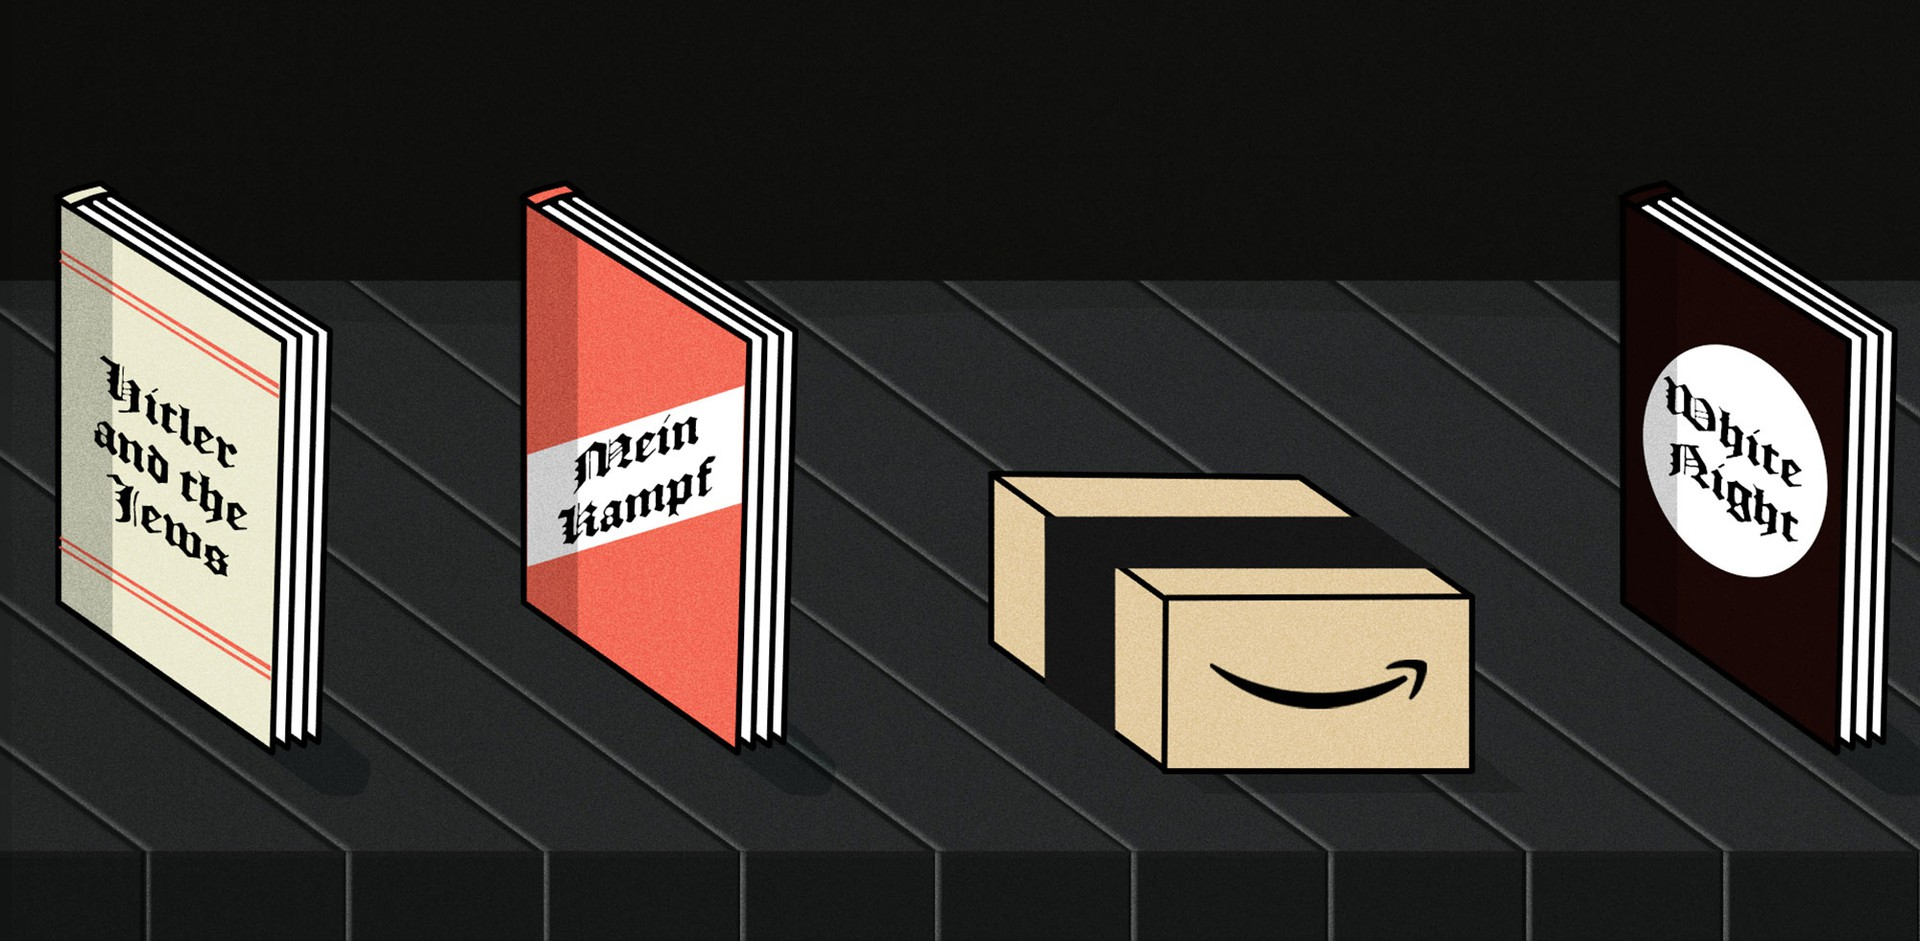 White-nationalist books on a conveyer belt with Amazon package